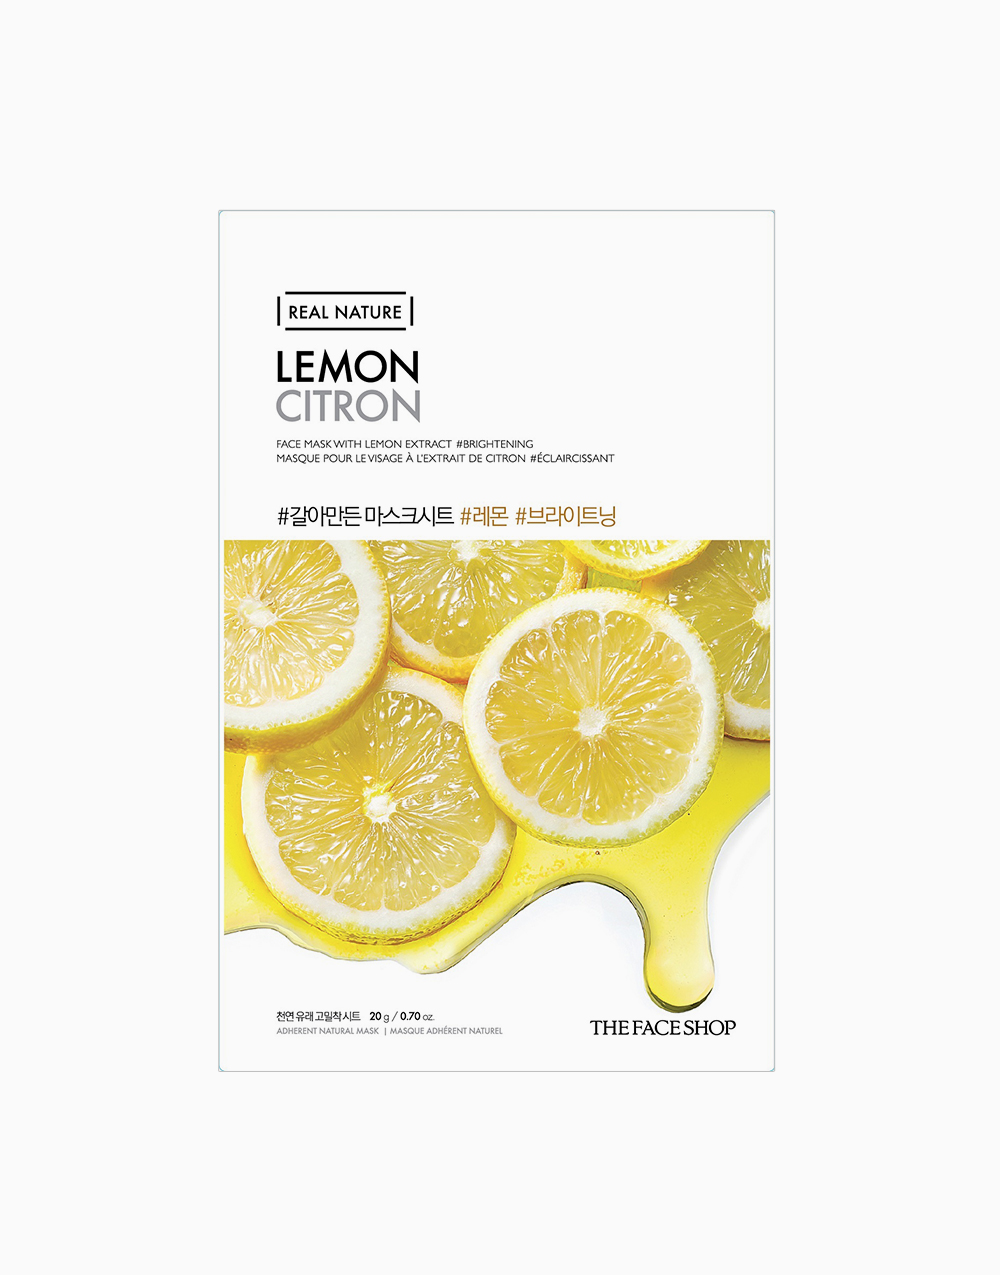 Real Nature Lemon Face Mask by The Face Shop